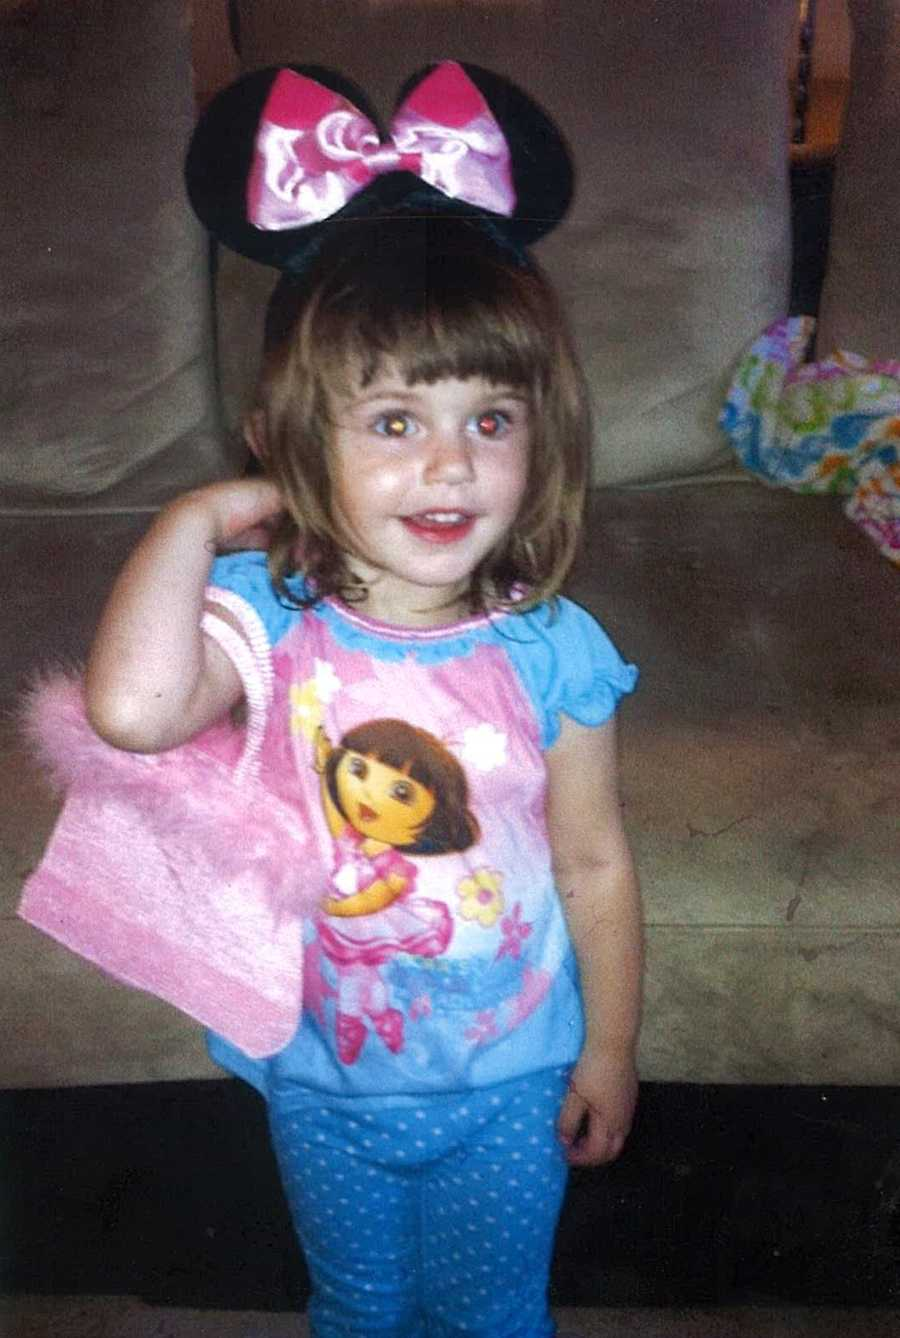 Chevelle is 4-years-old, and described as 2 feet 6 inches tall, 30 lbs with brown hair and brown eyes.